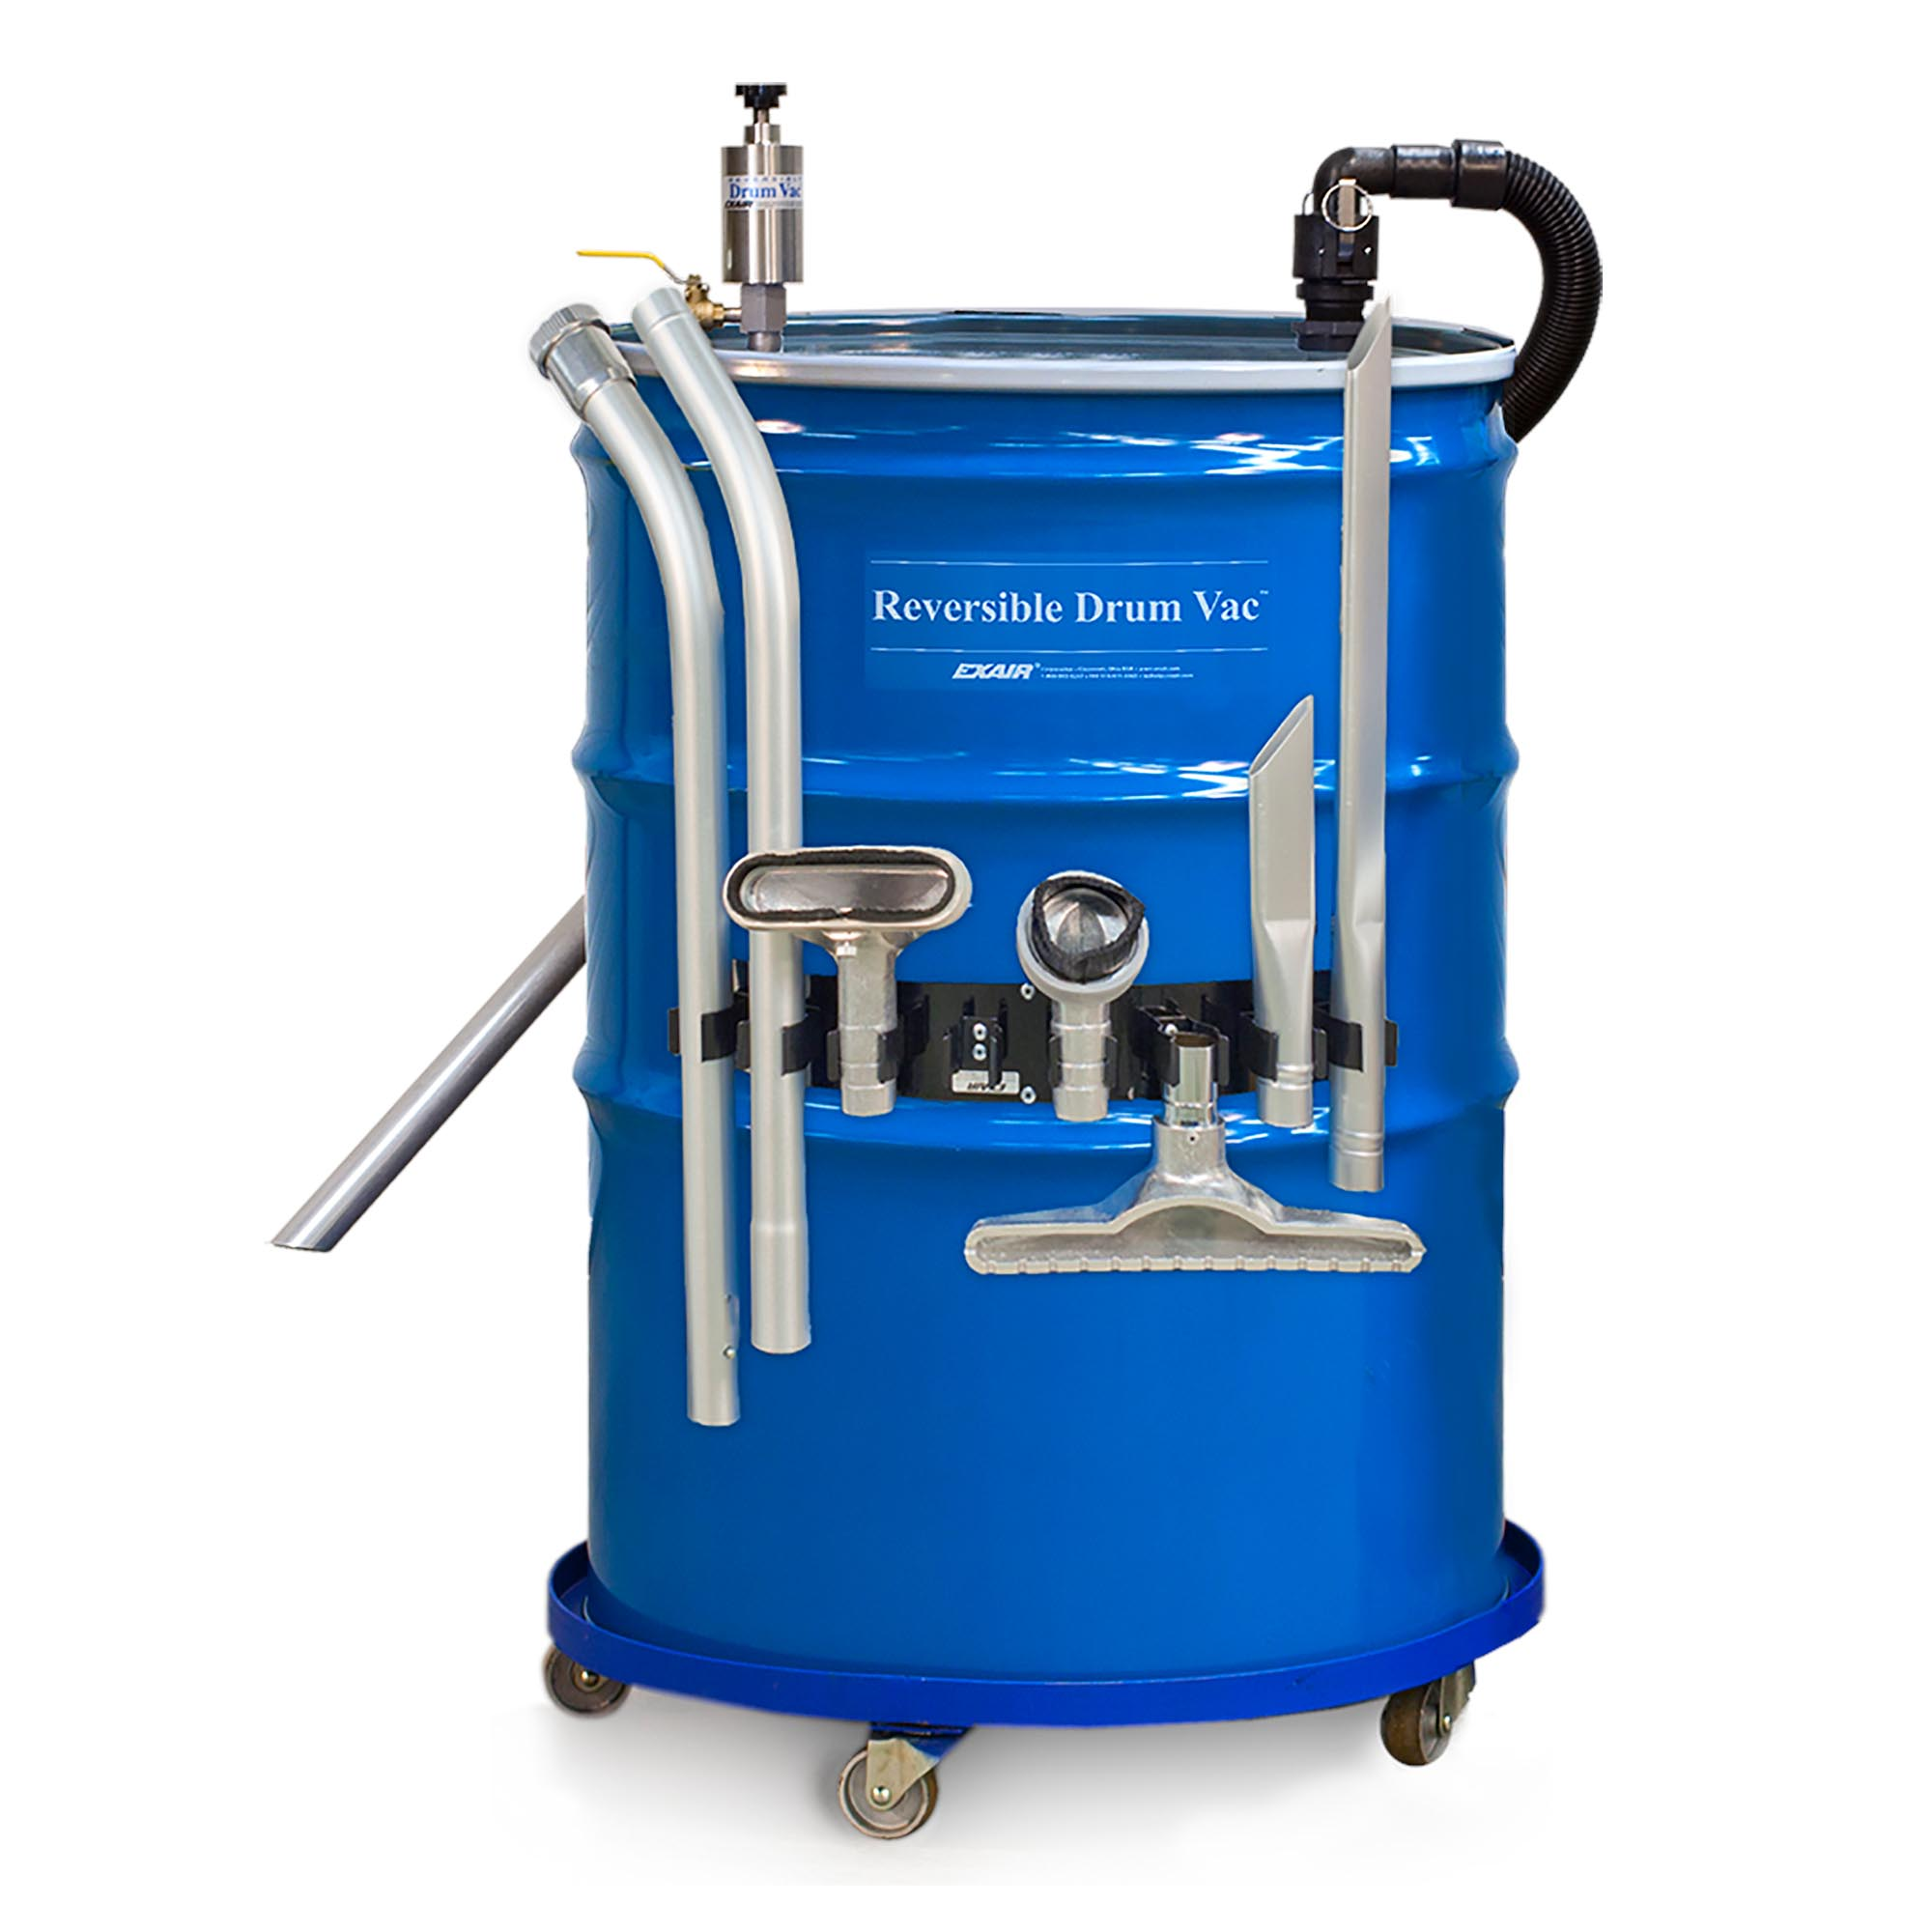 EXAIR's 110-Gallon Reversible Drum Vac is a powerful liquid vacuum and the ideal way to vacuum coolant, hydraulic oils, spills, sludge, tramp oil and waster water.